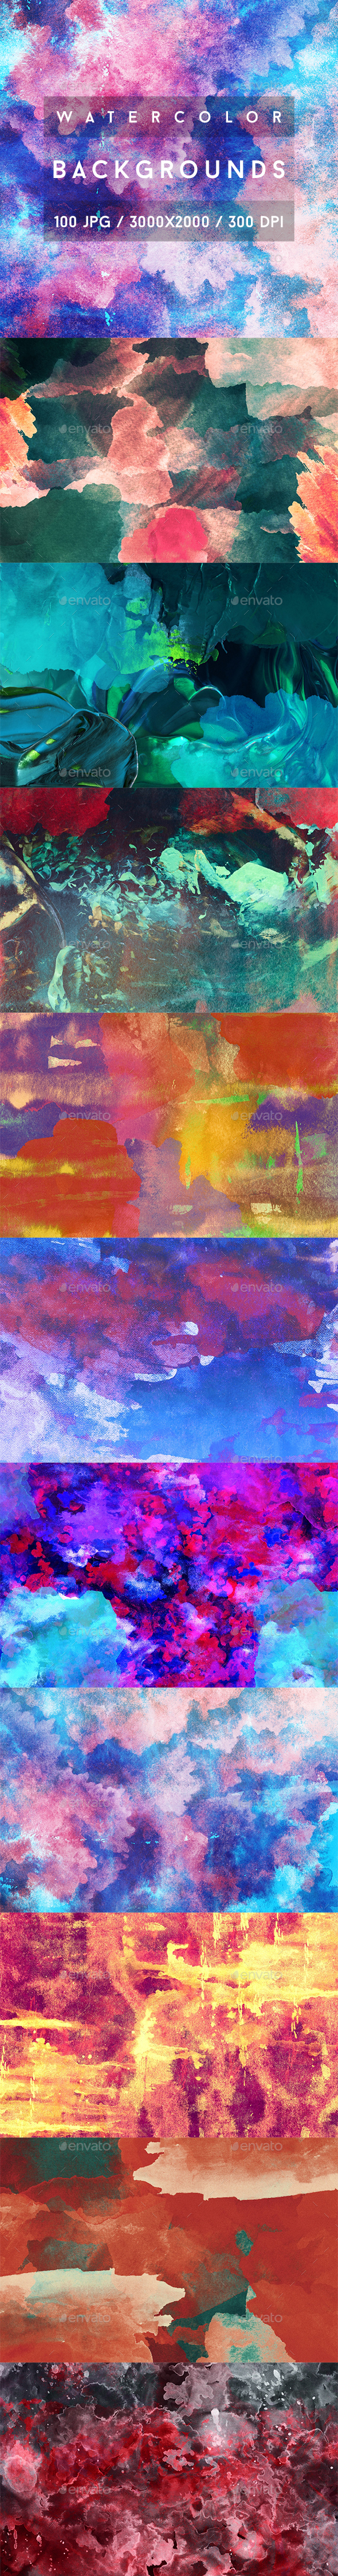 100 Watercolor Backgrounds - Abstract Backgrounds